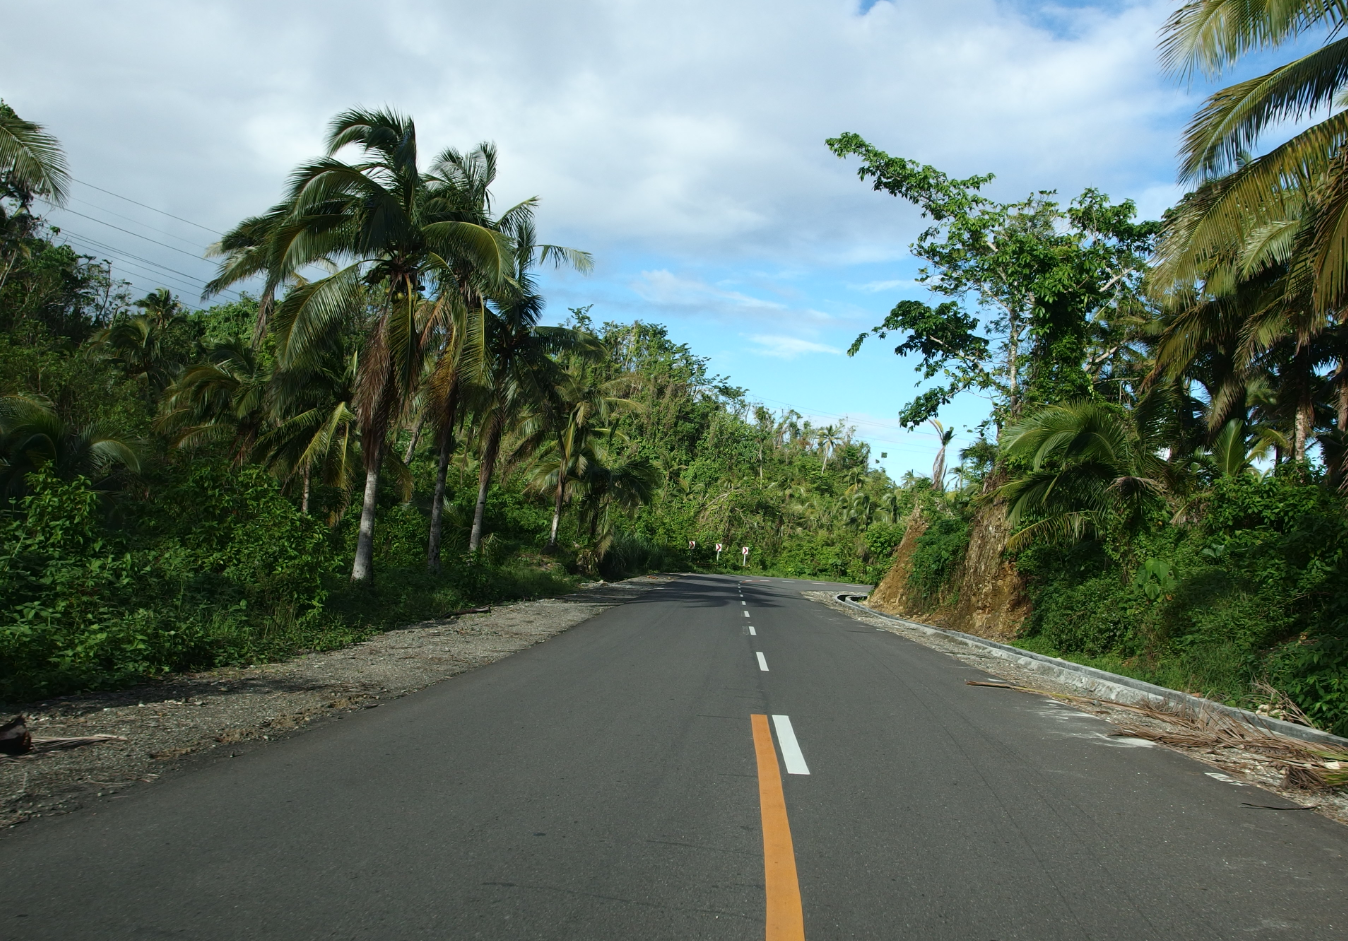 The MCC-funded road on Samar Island withstood Typhoon Haiyan, one of the strongest typhoons in history.